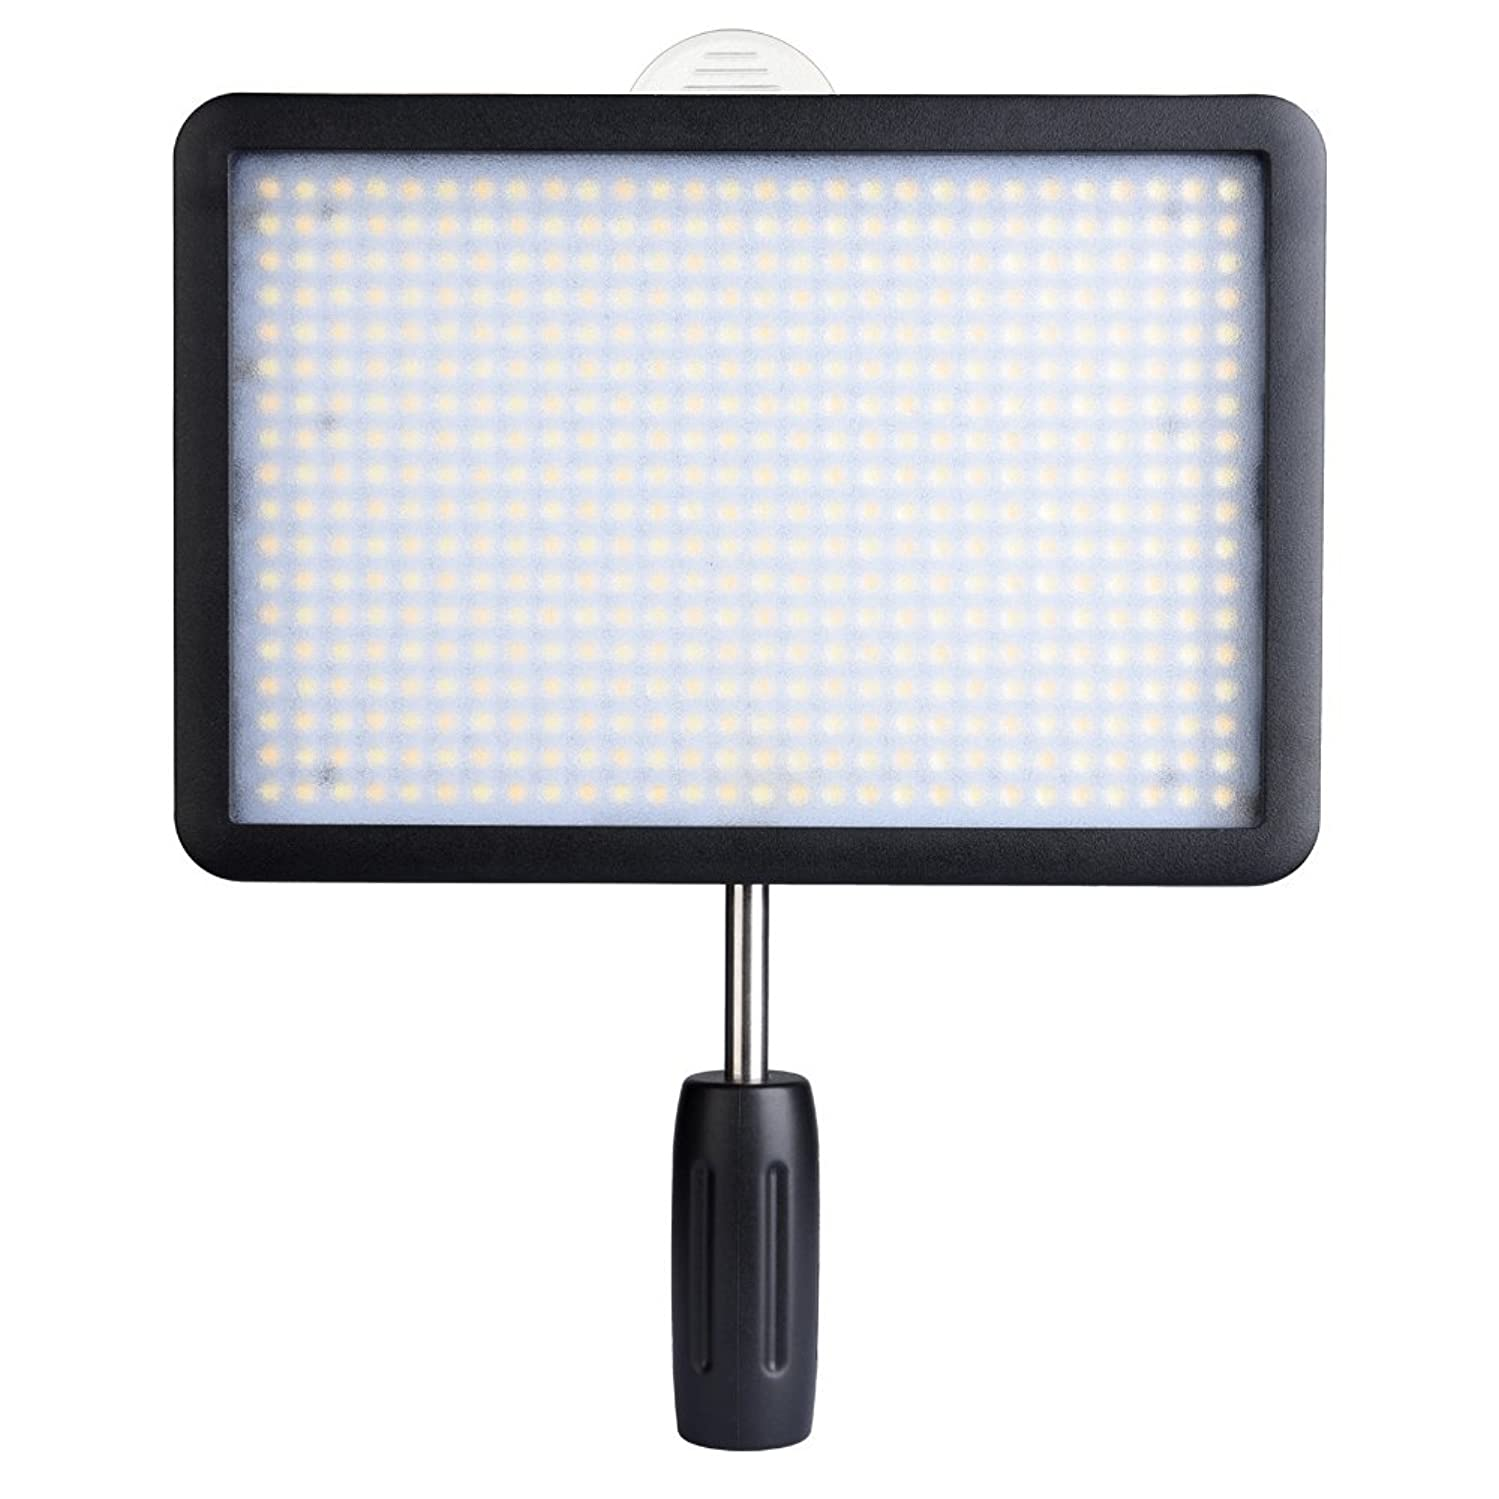 Godox LED500LC Changeable Version 3300K-5600K LED Video Light with Handle and RC-A5 Remote Control